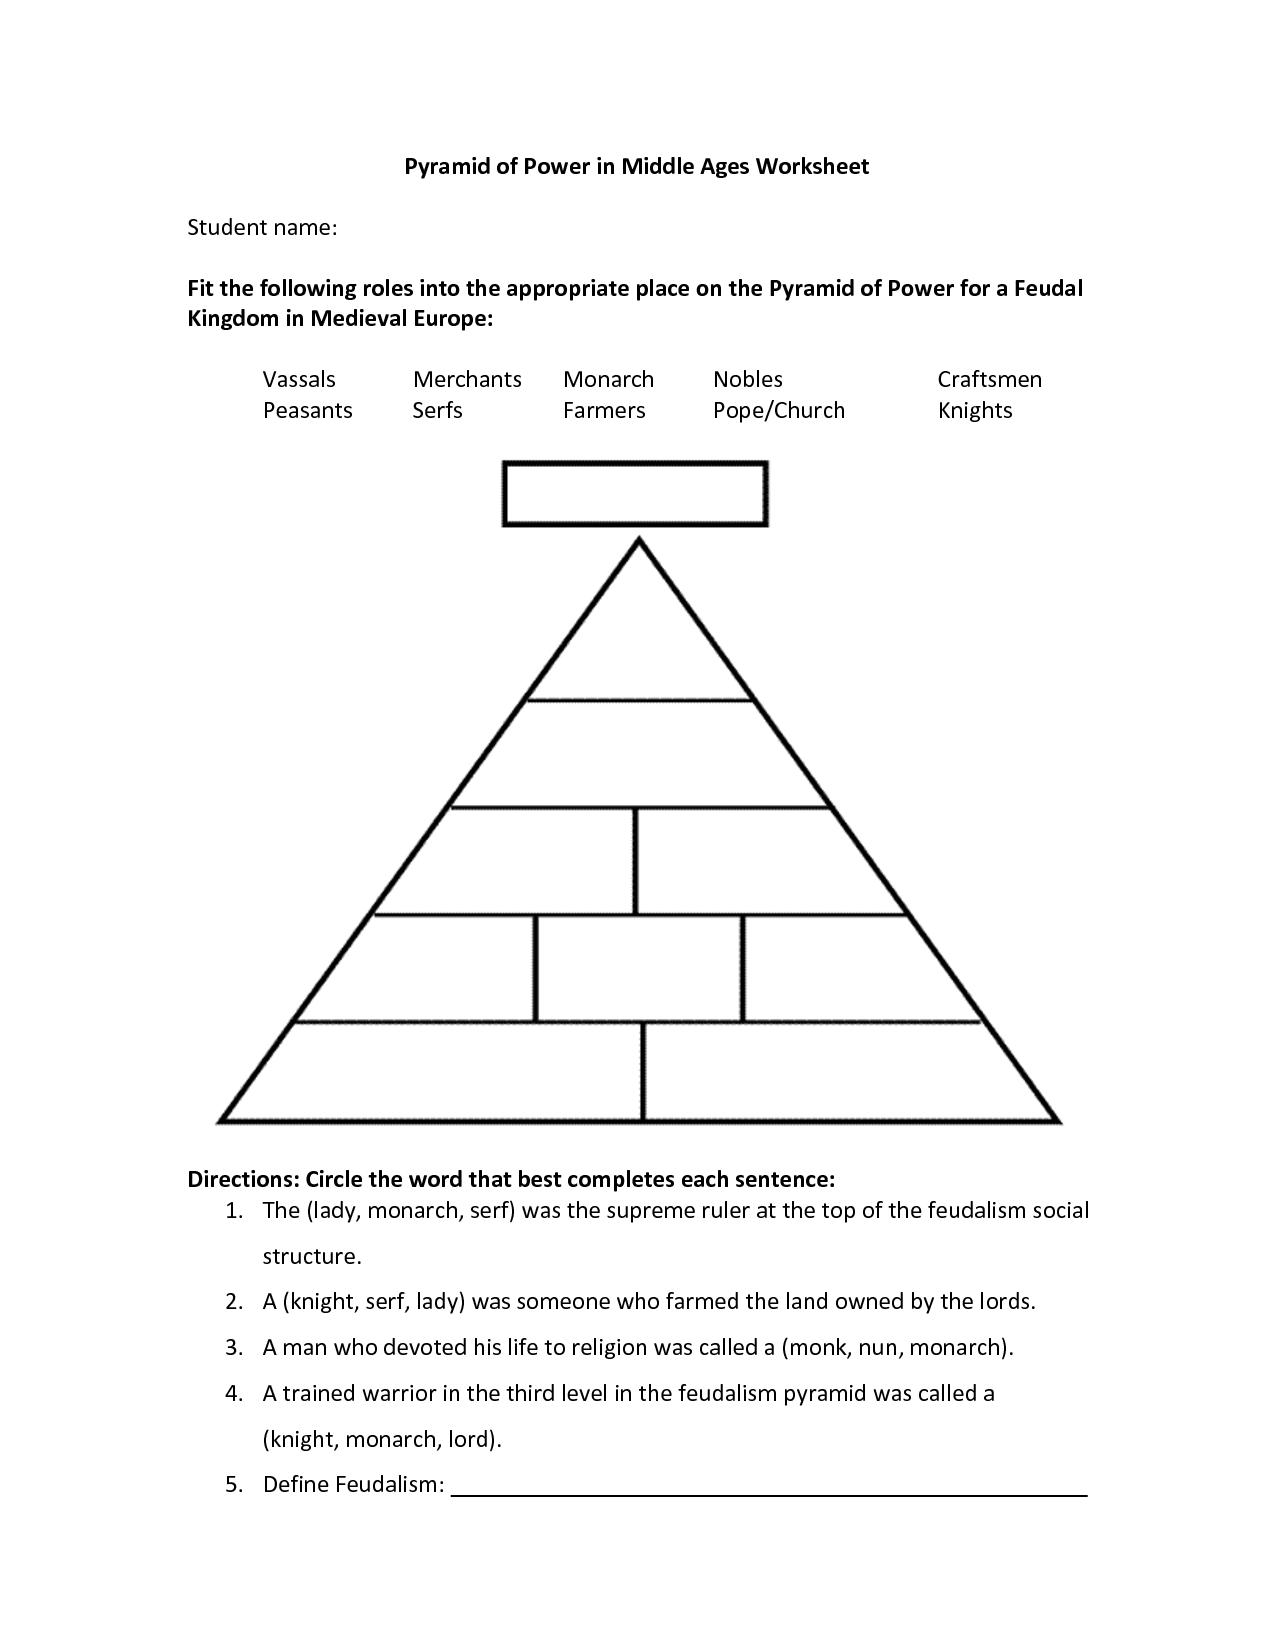 Medievalworksheets Pyramid Of Power In Middle Ages Worksheet